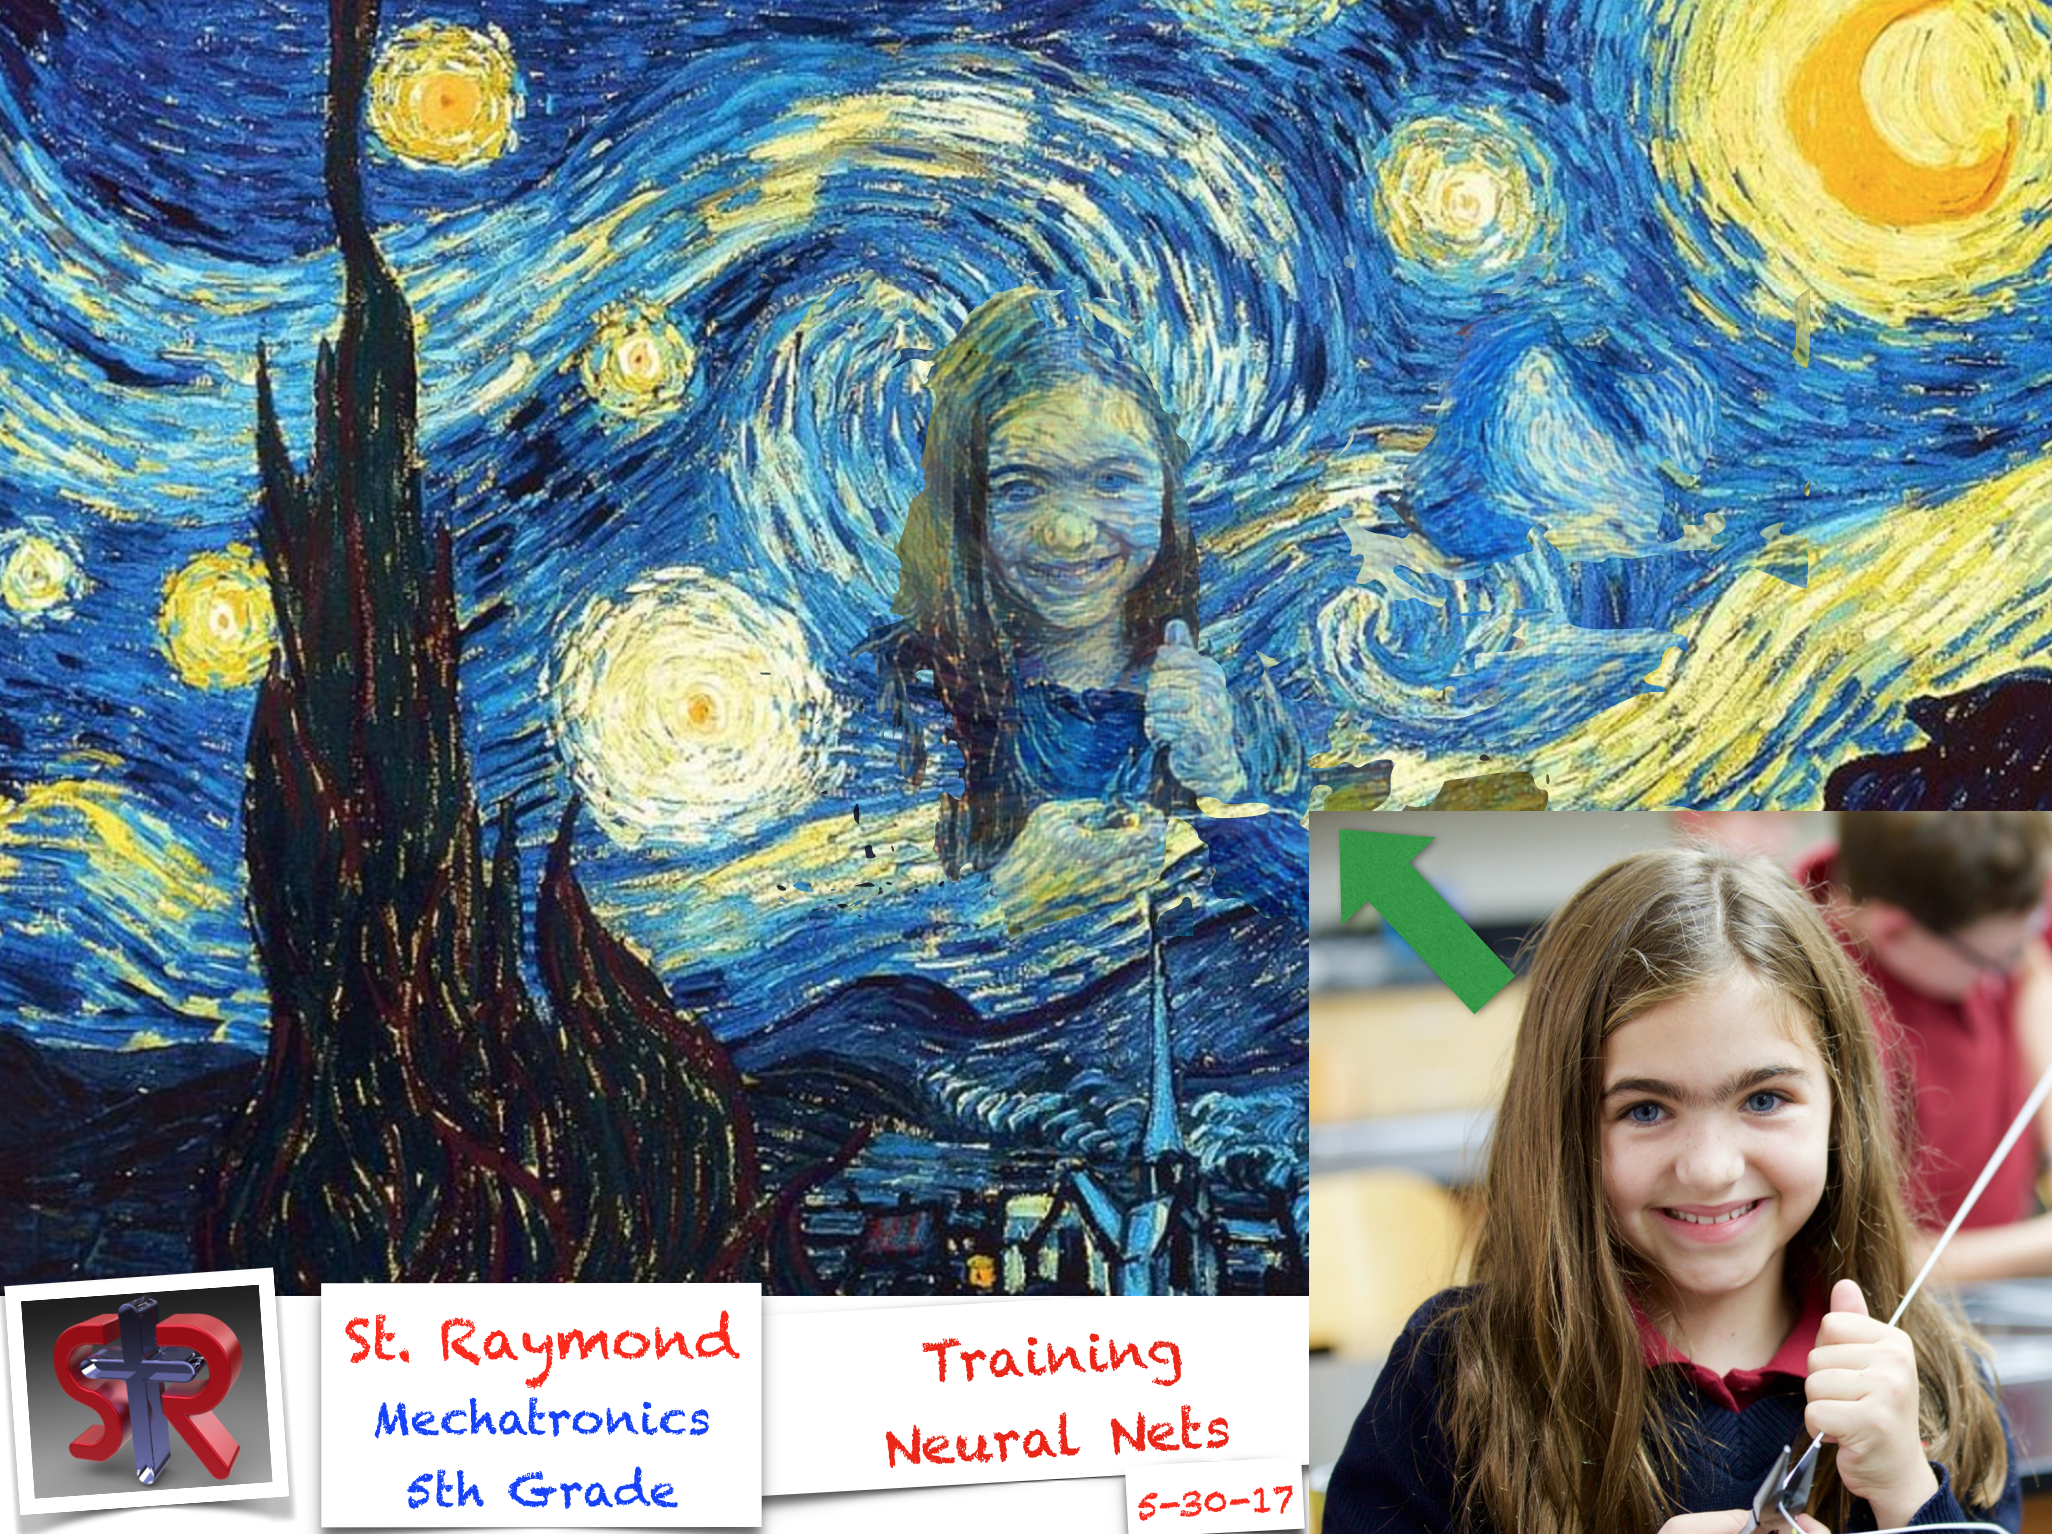 One of the 5th grade students leaps into Van Gough's starry night with the help of a Neural Net